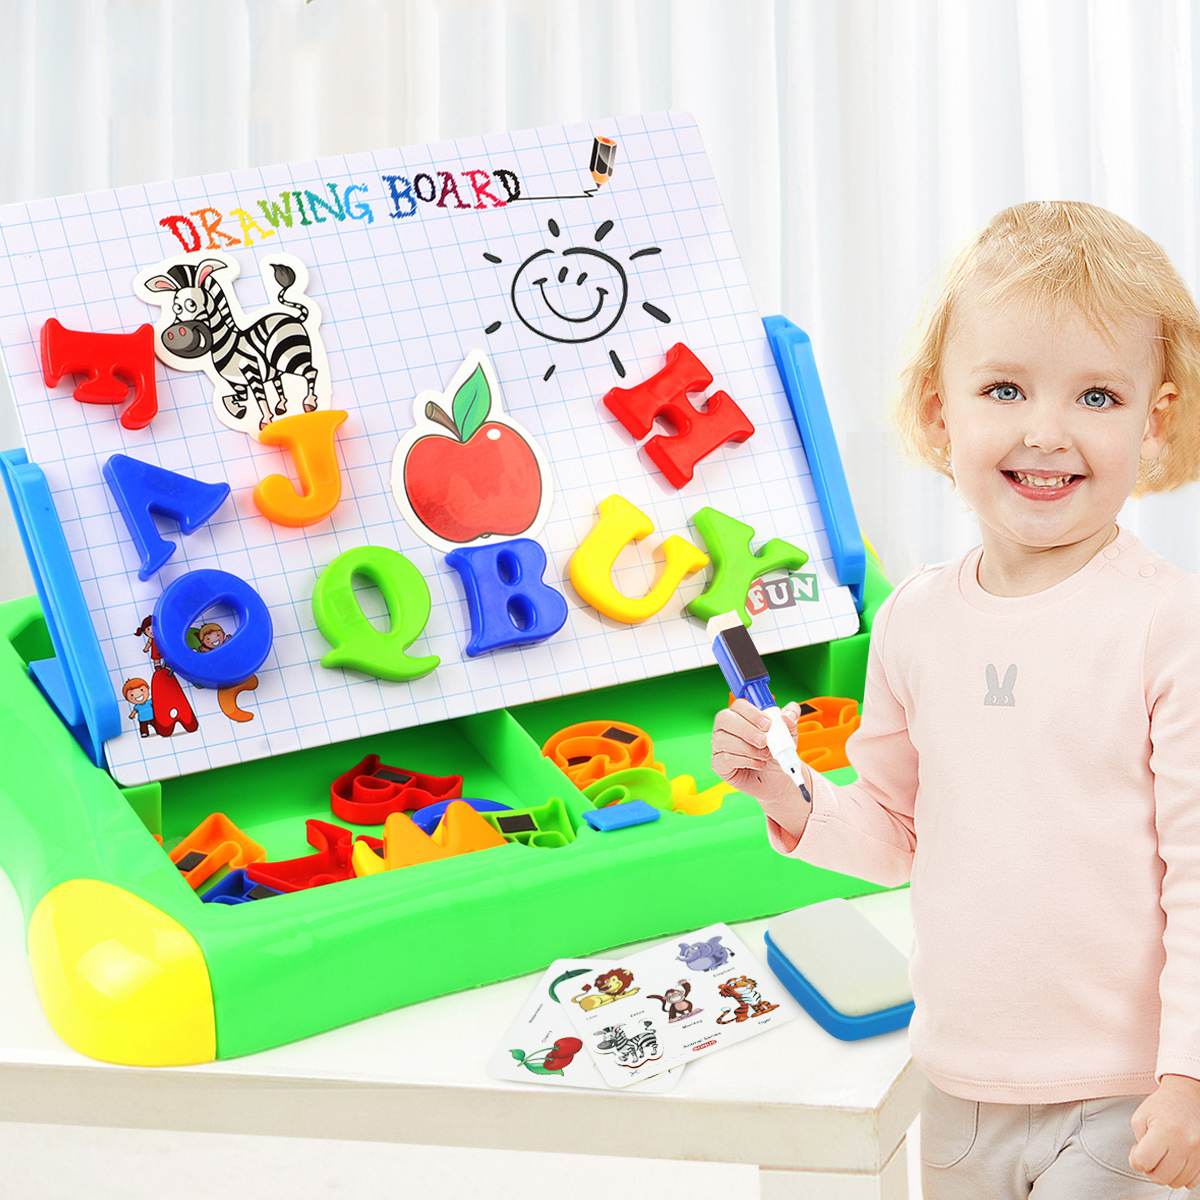 Children Magnetic Drawing Board Magnetic Alphabet Toys Plastic Color Magnetic Drawing Board Graffiti Lettered Stickers Foreign T